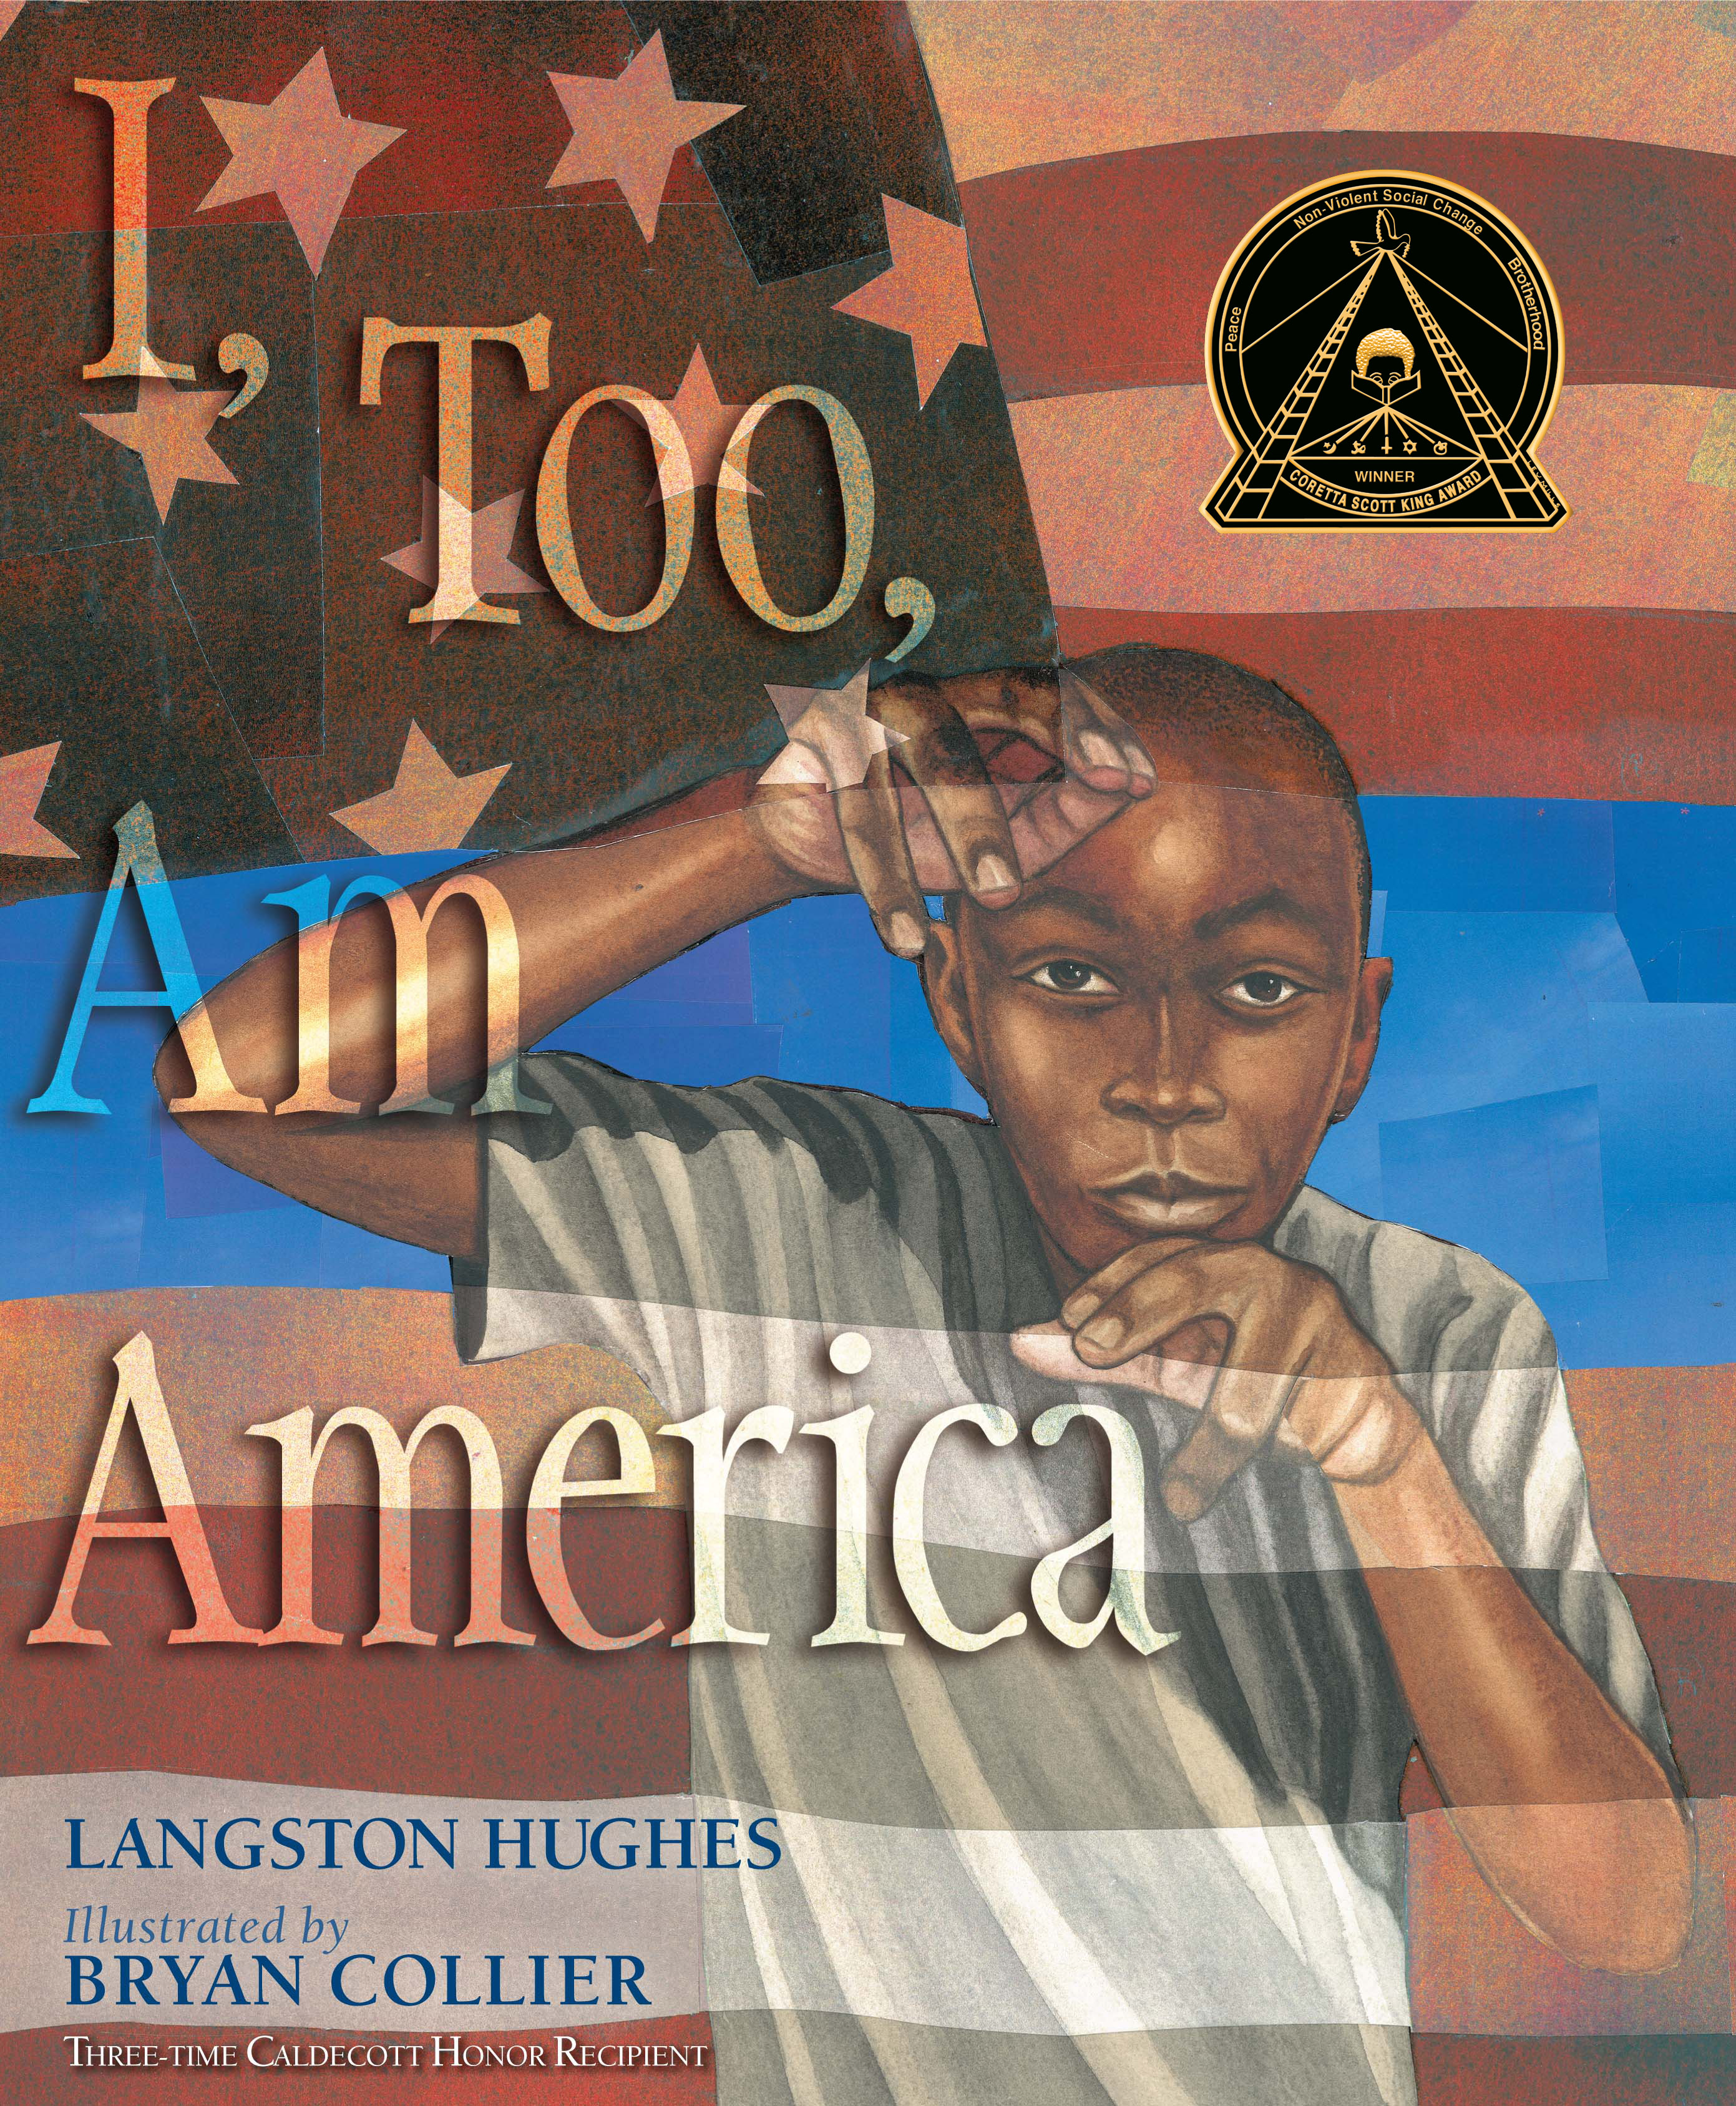 Image result for i too langston hughes